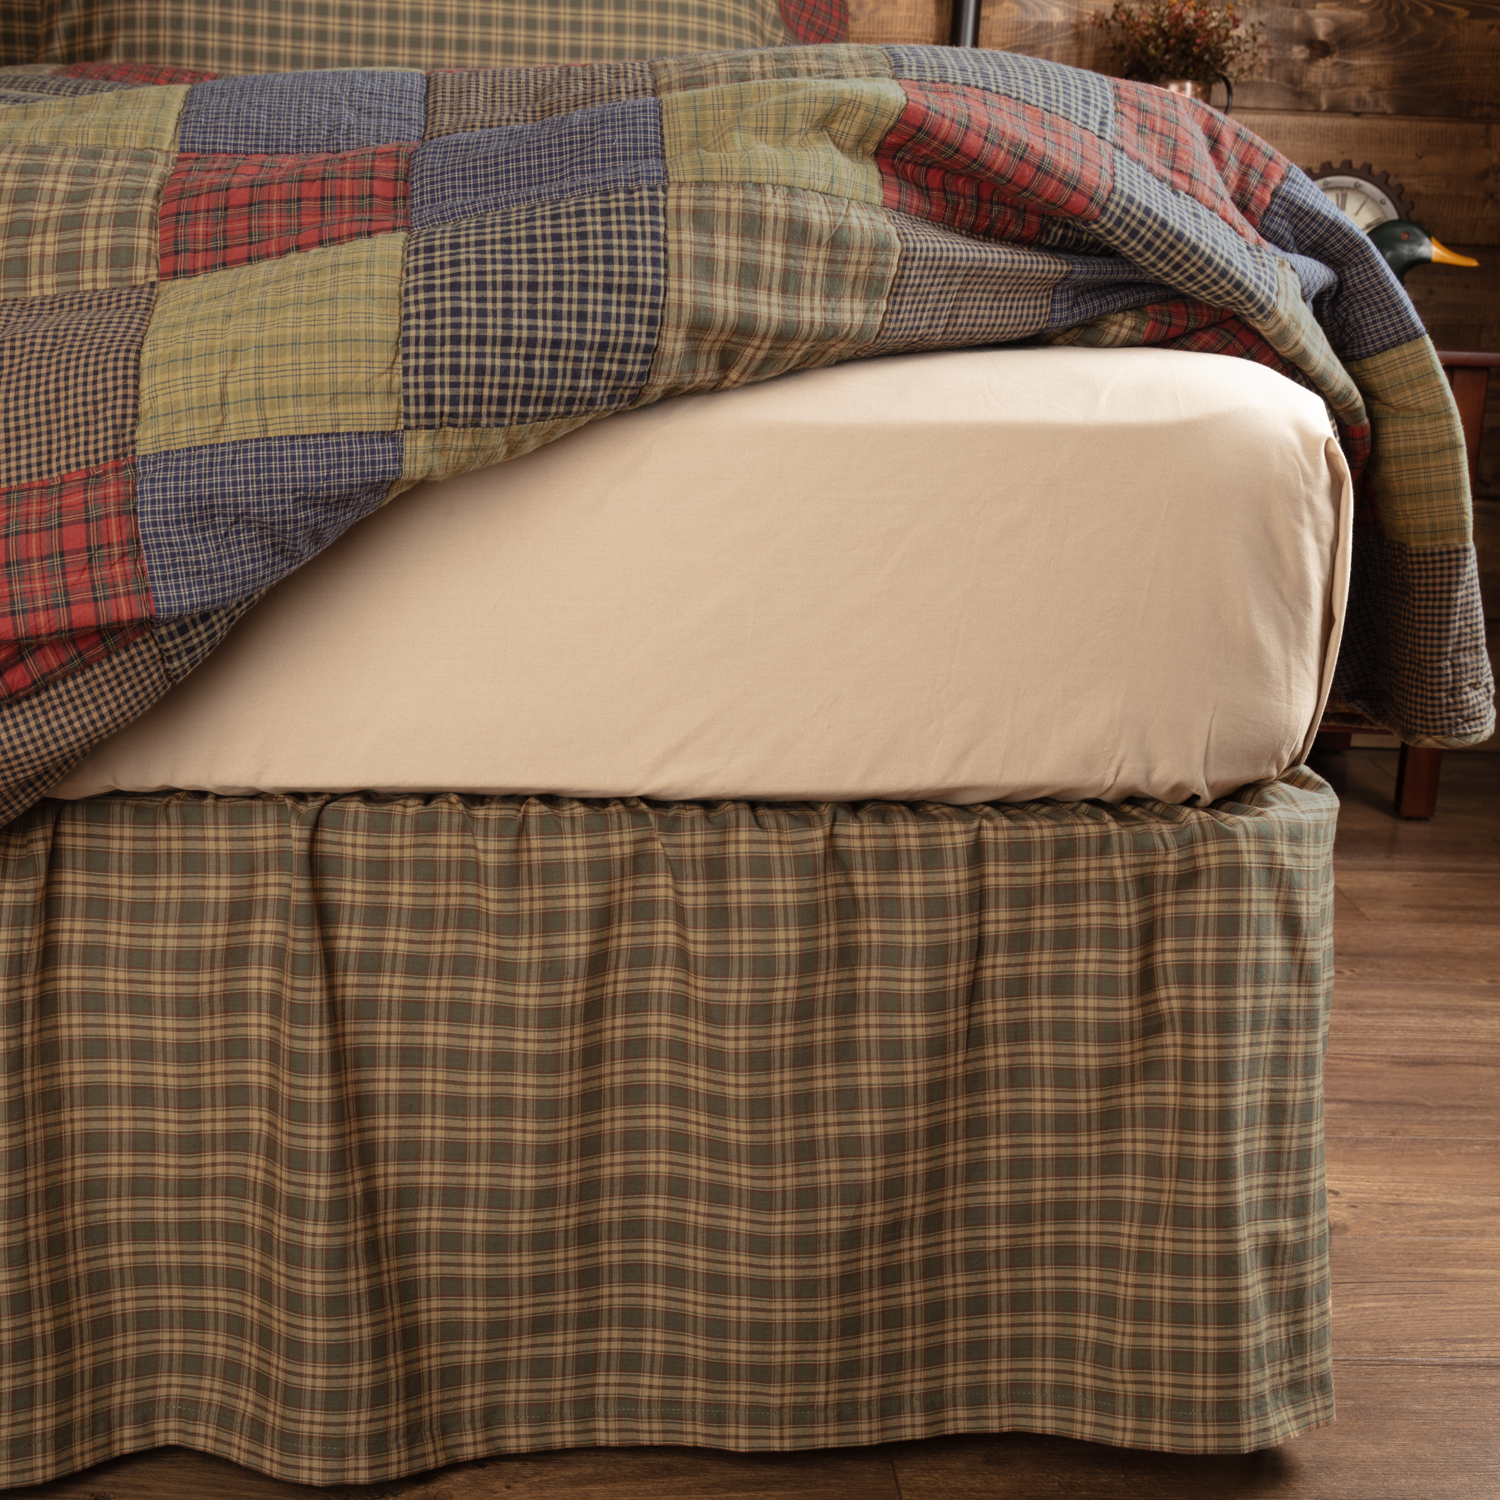 Cedar Ridge King Bed Skirt 78x80x16